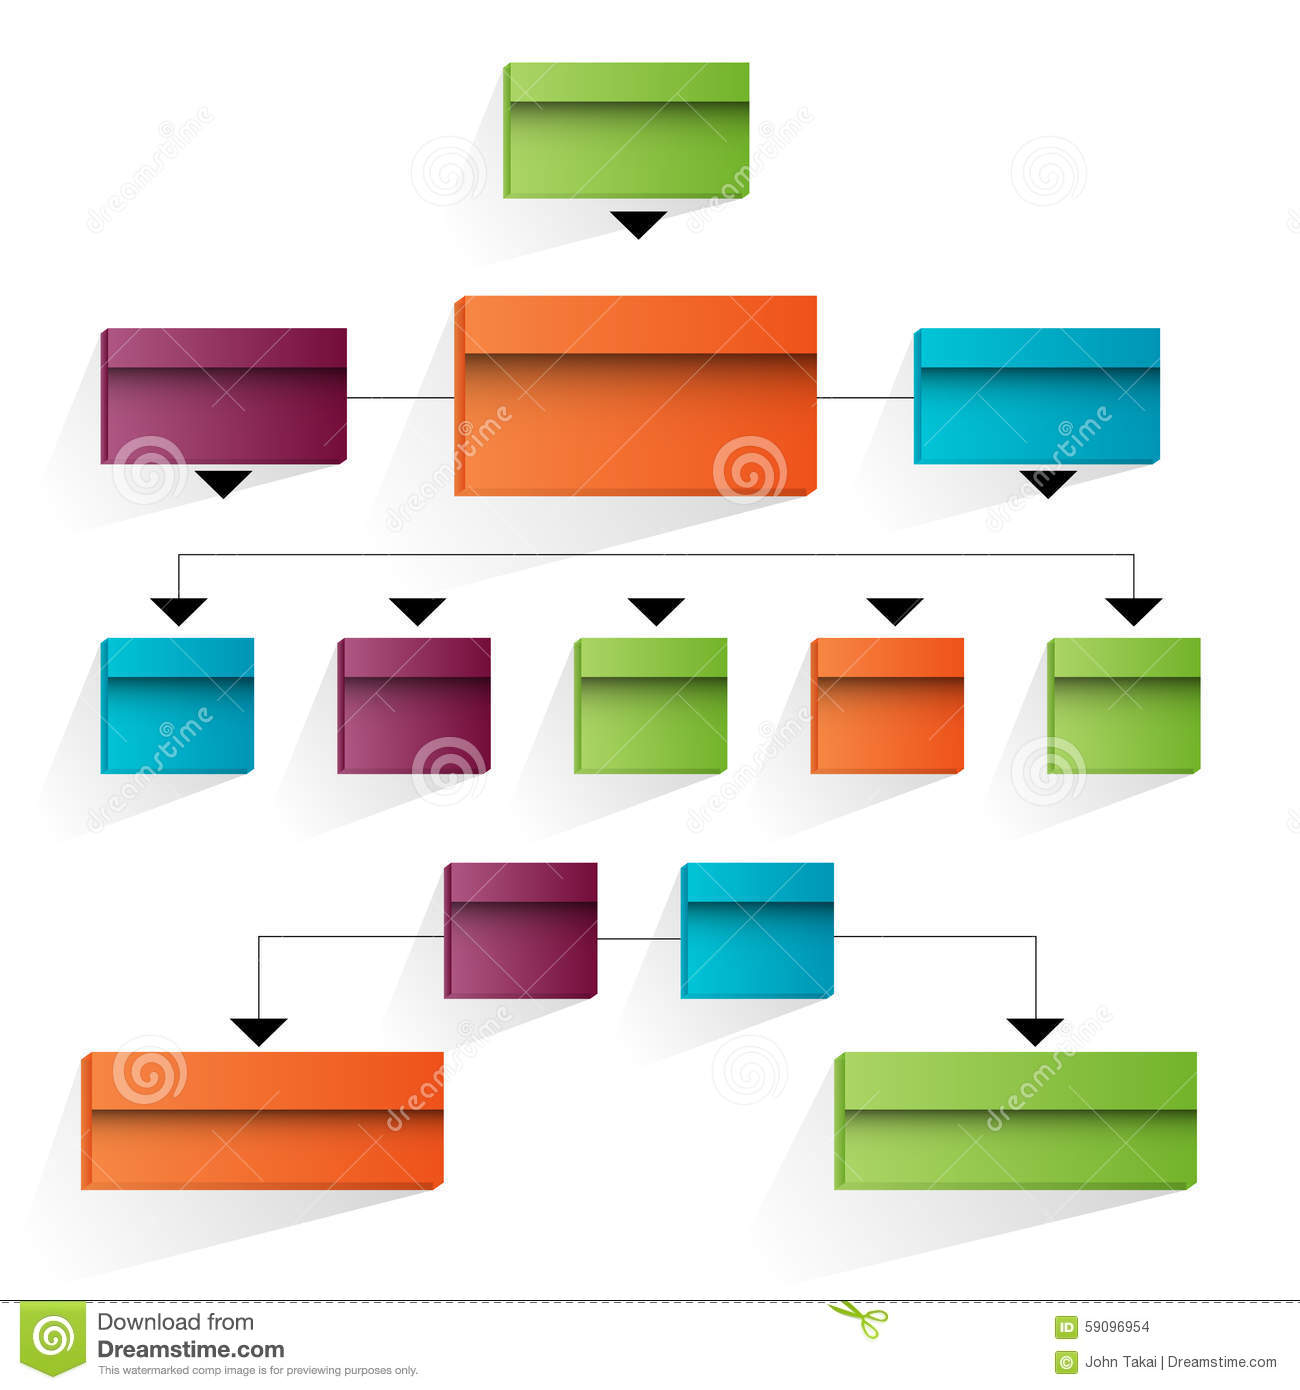 3d Corporate Organizational Chart Icon Stock Vector - Image: 59096954